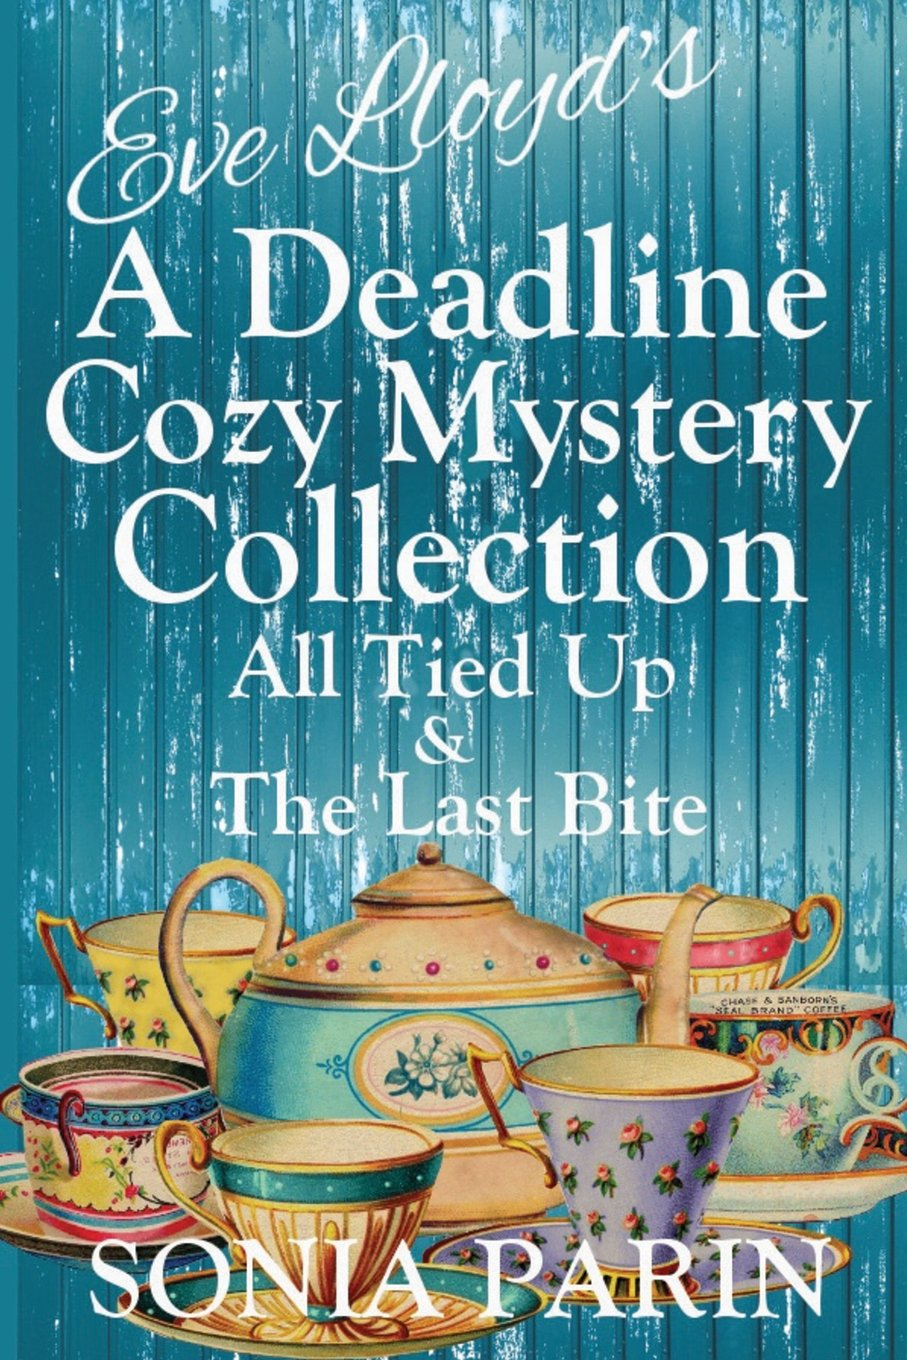 Eve Lloyd's A Deadline Cozy Mystery Collection: All Tied Up & The Last Bite (Volume 2) ebook